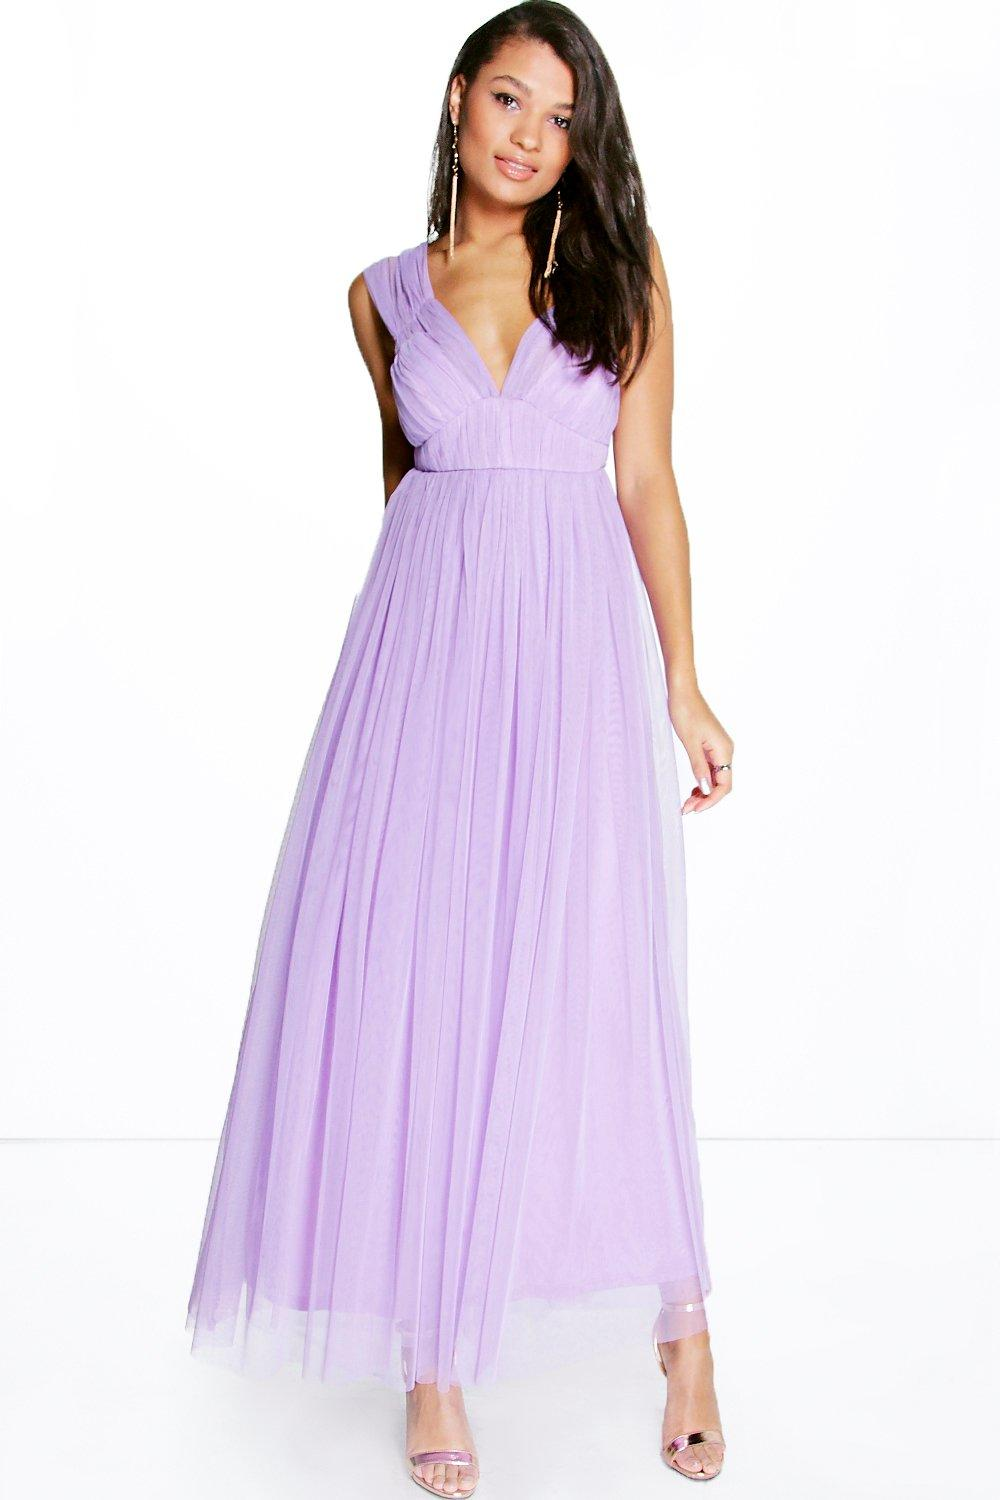 Boutique Anya Seam Detail Tulle Maxi Dress